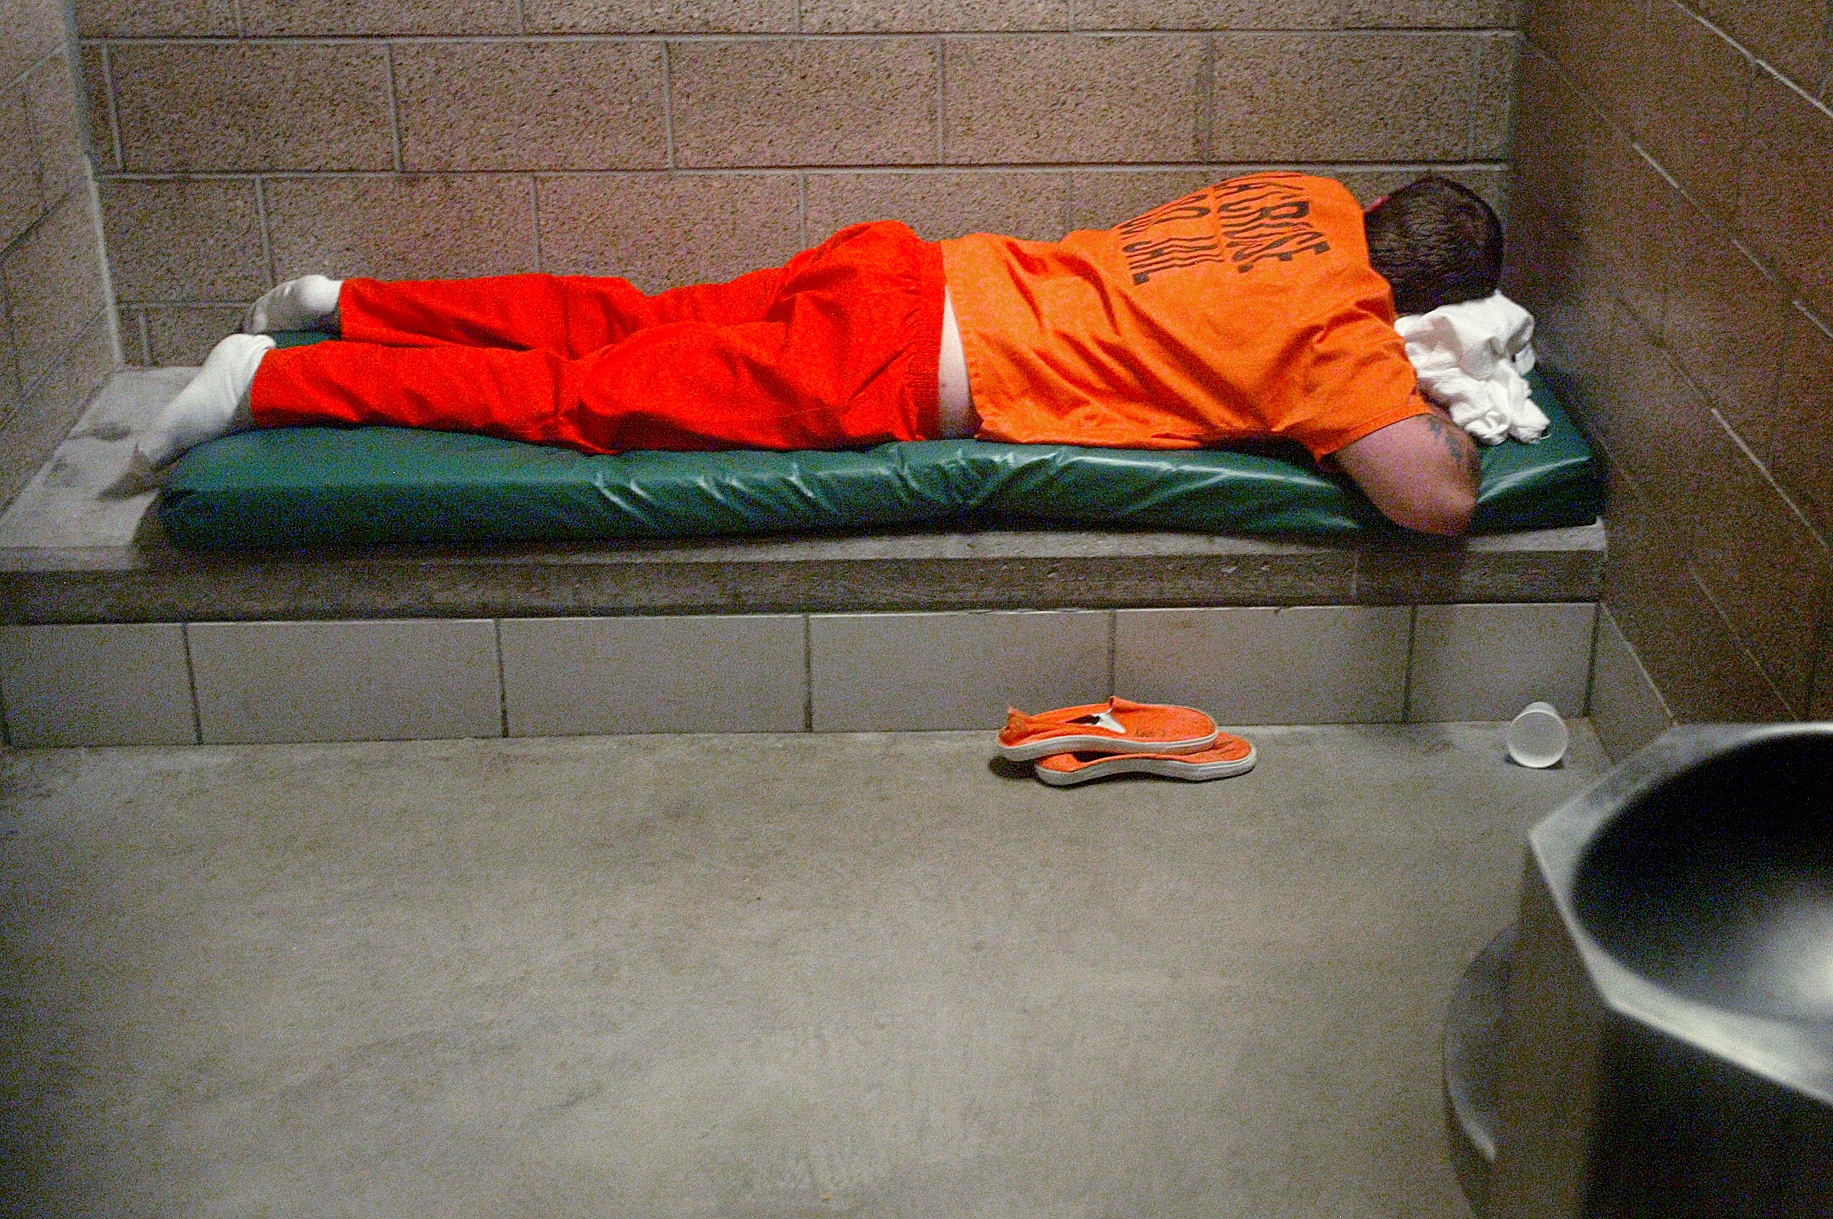 Ignored and underfunded, mental health care thin at county jails